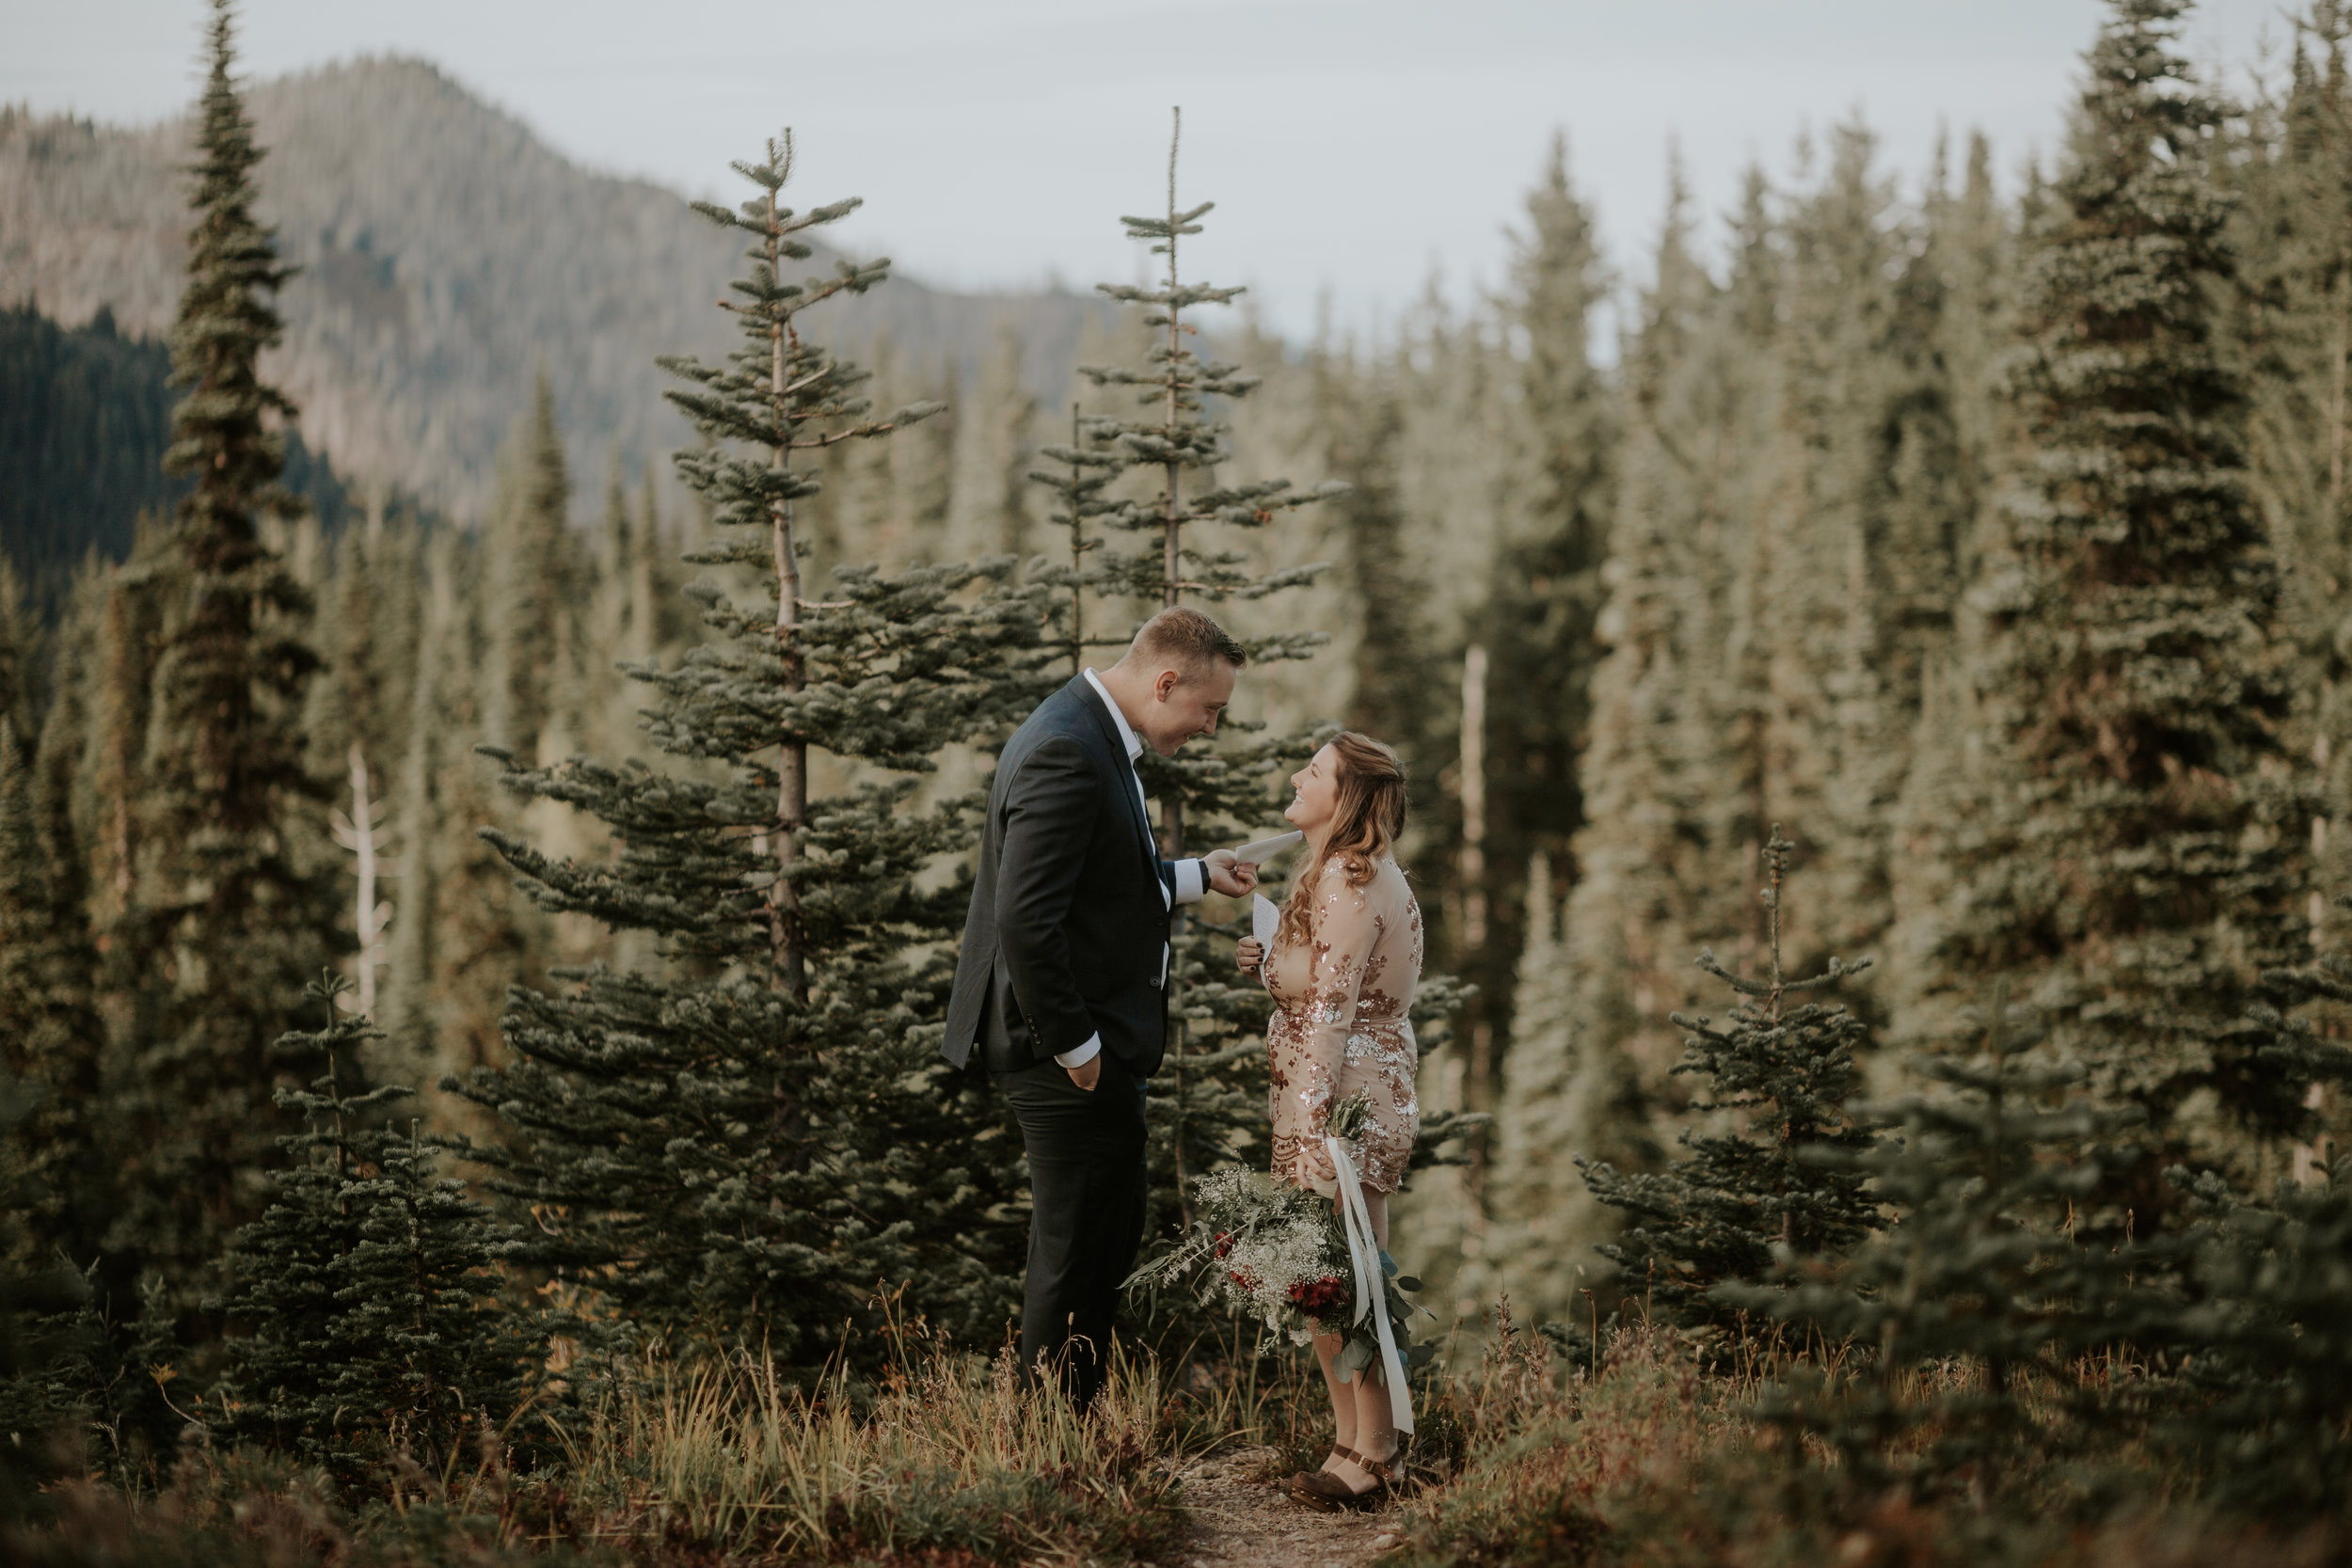 PNW-Hurricane-Ridge-Port-Angeles-Washington-elopement-photographer-kayla-dawn-photography-kayladawnphoto-wedding-anniversary-photoshoot-olympic-peninsula-130.jpg